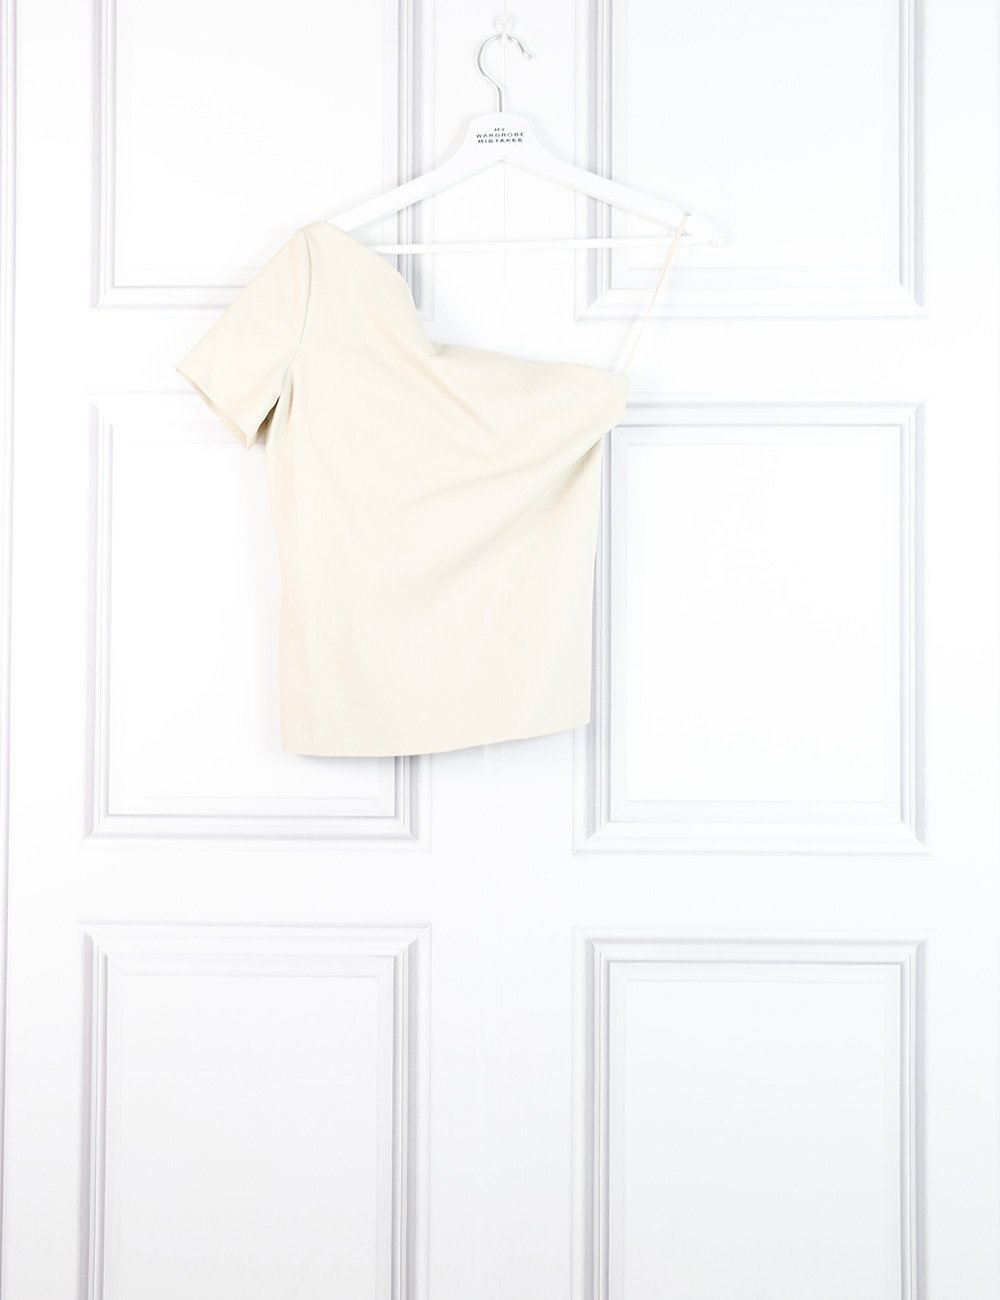 Helmut Lang beige asymmetric leather top 10Uk- My Wardrobe Mistakes